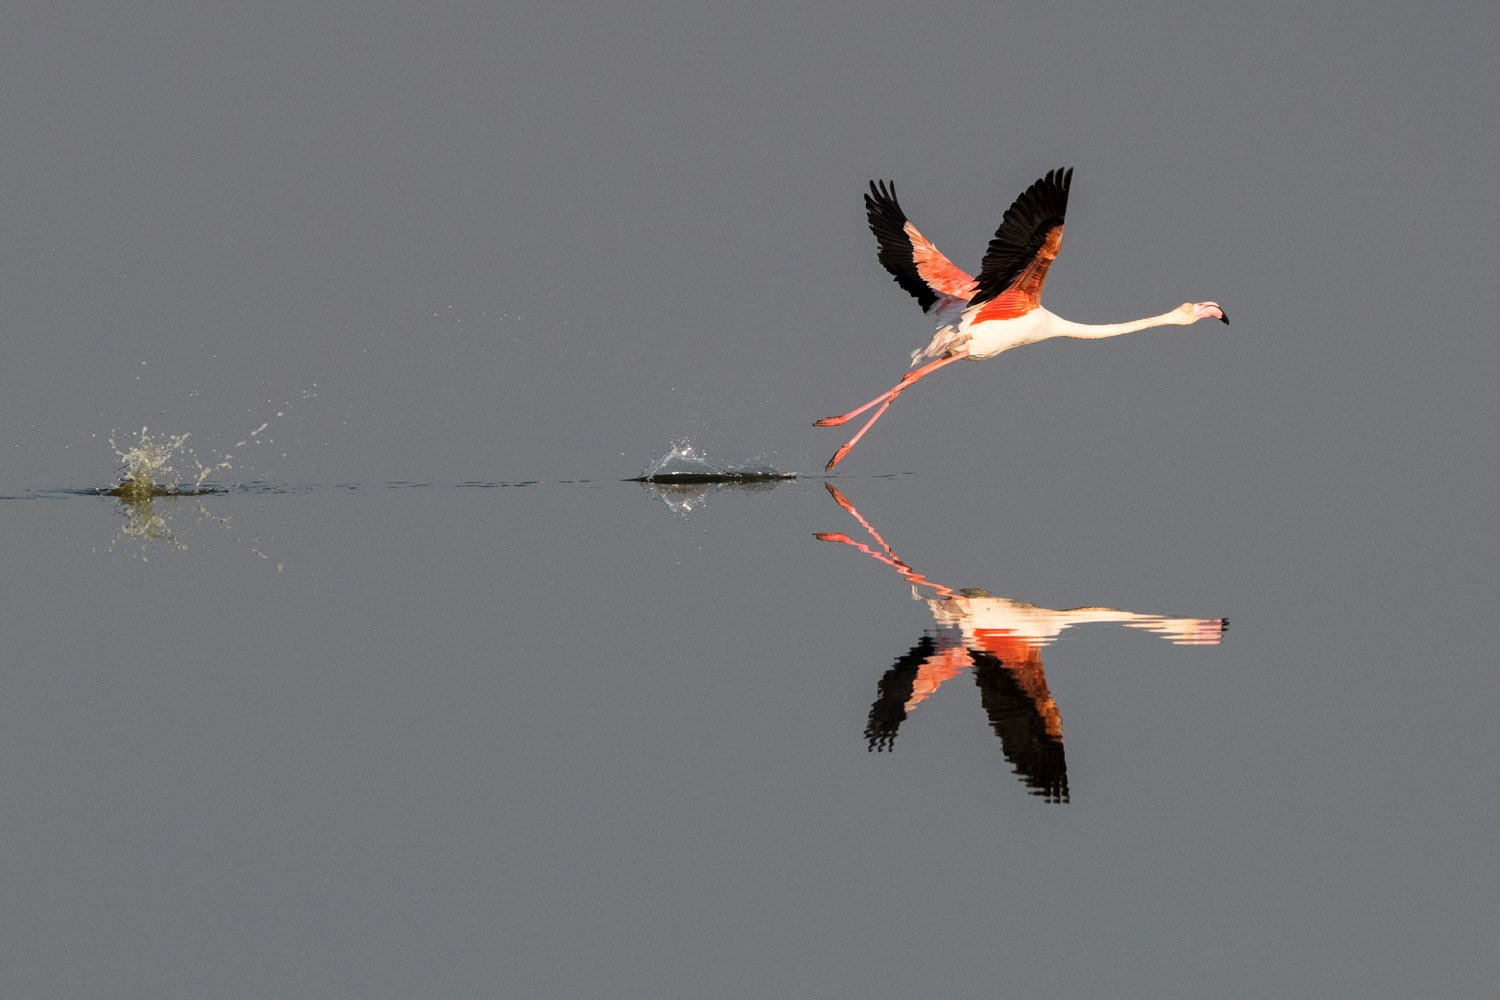 Greater flamingo taking off, Axios Delta National Park, Thessaloniki, Greece